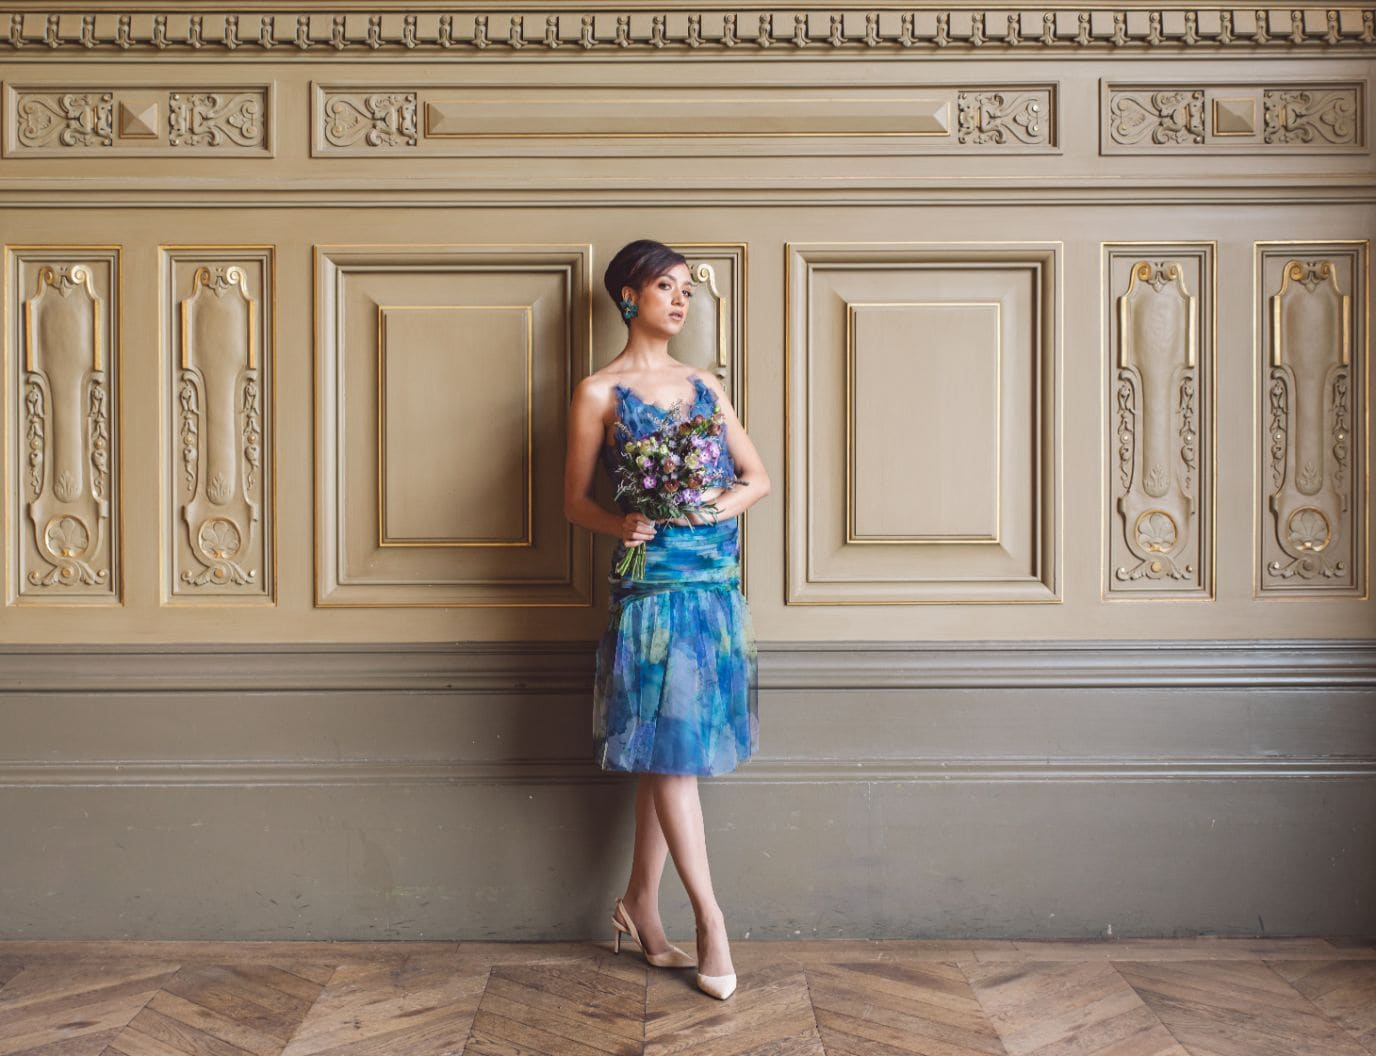 Bridesmaid holds a bridal bouquet wearing an unique designed blue dress from Truly Love Me in Paris